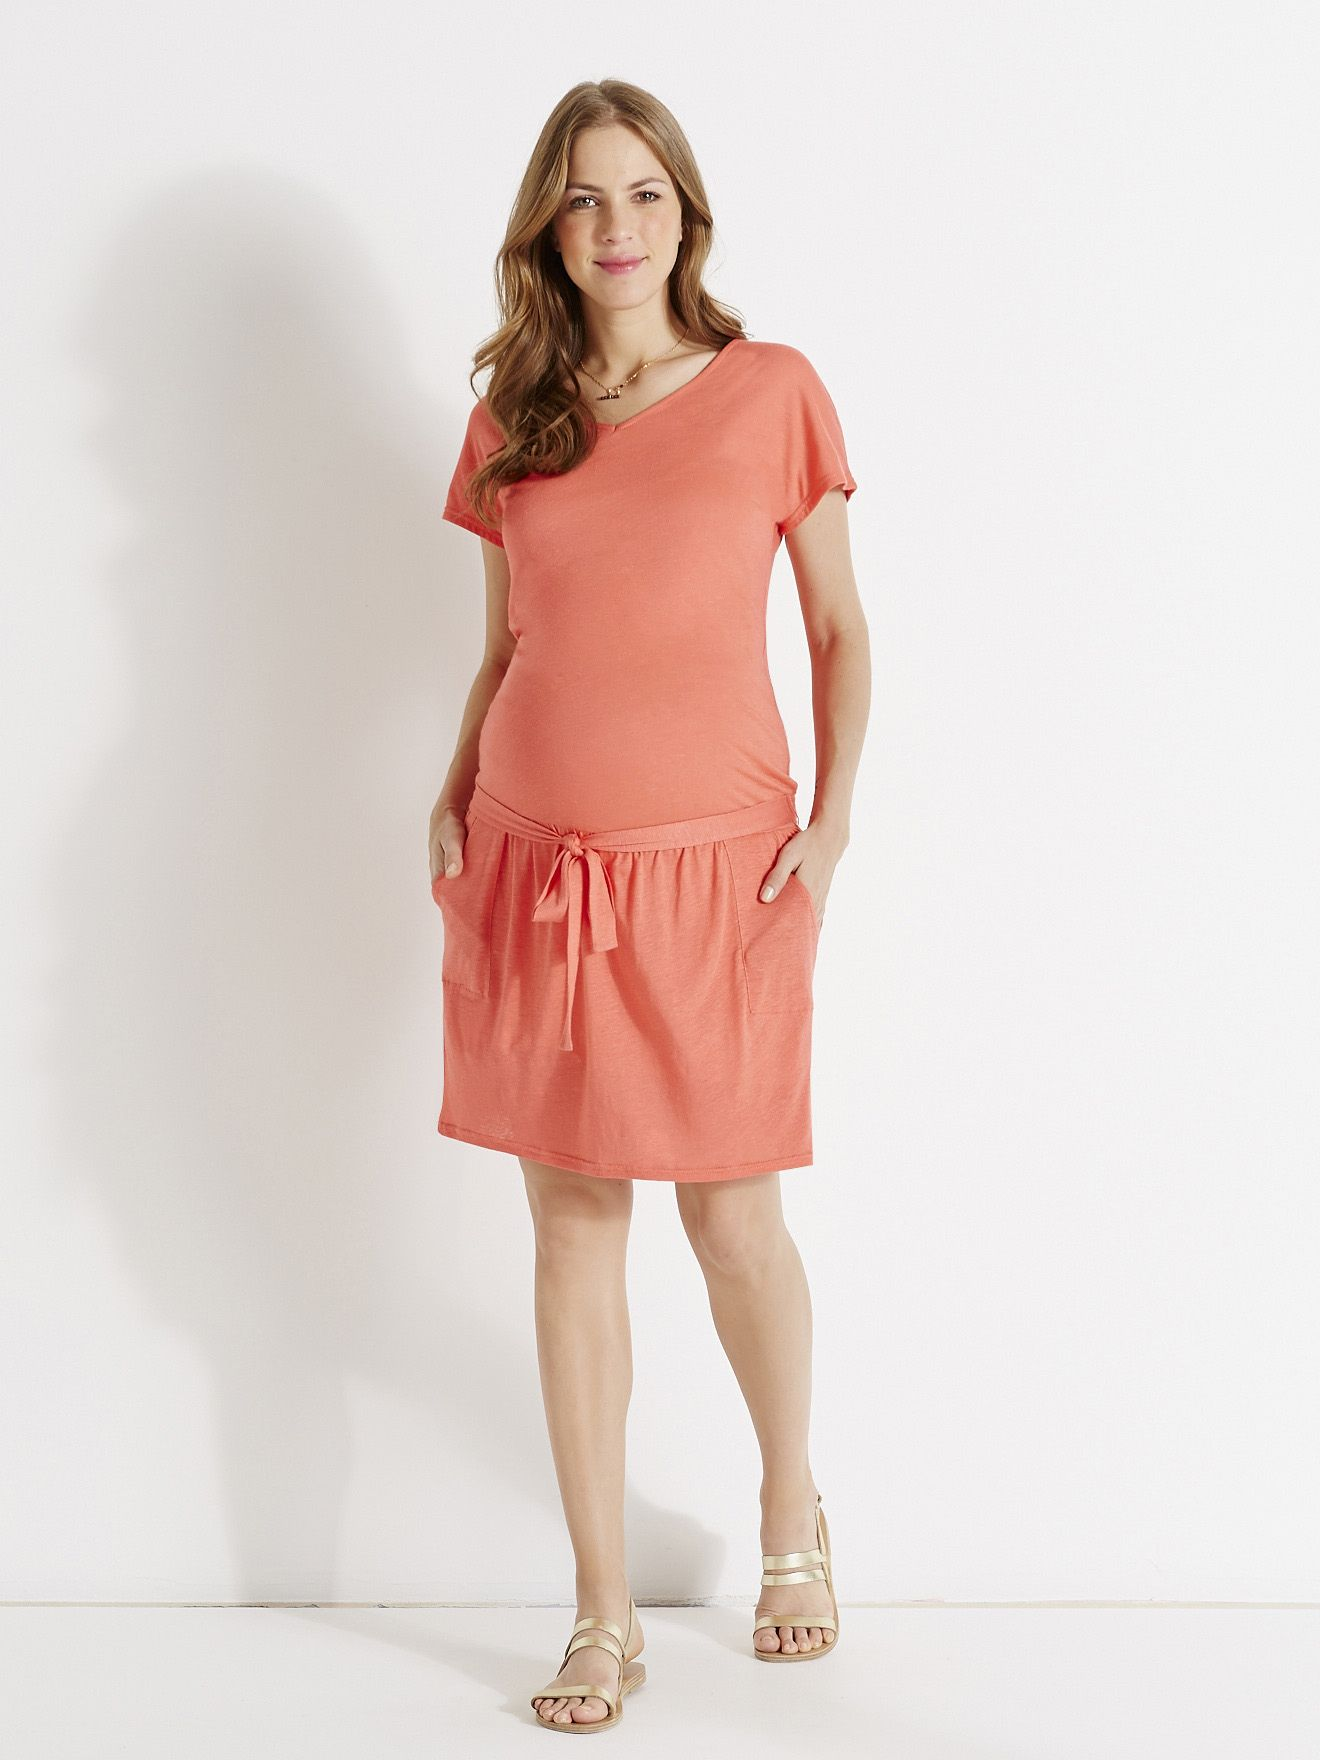 b48a5937f8 Pin by Parent Ideal on Maternity Dresses | Maternity dresses ...